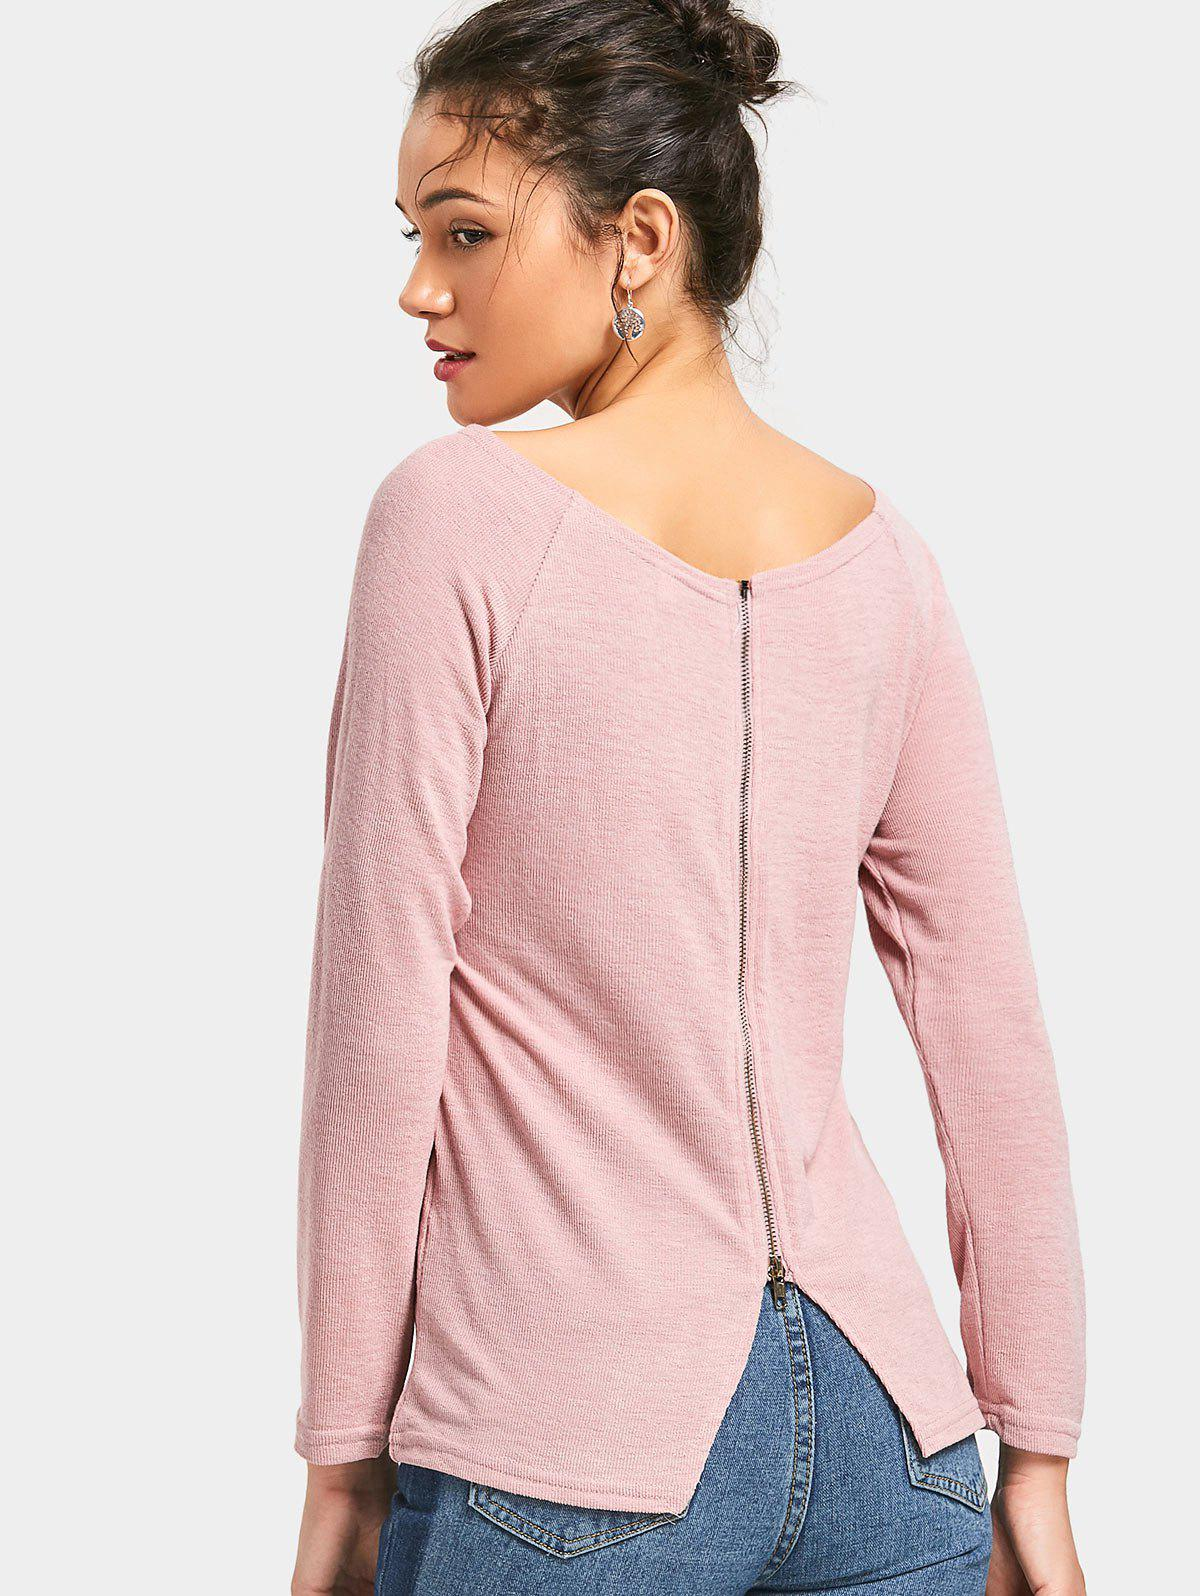 Boat Neck Back Zipper Knitted Top 228689902